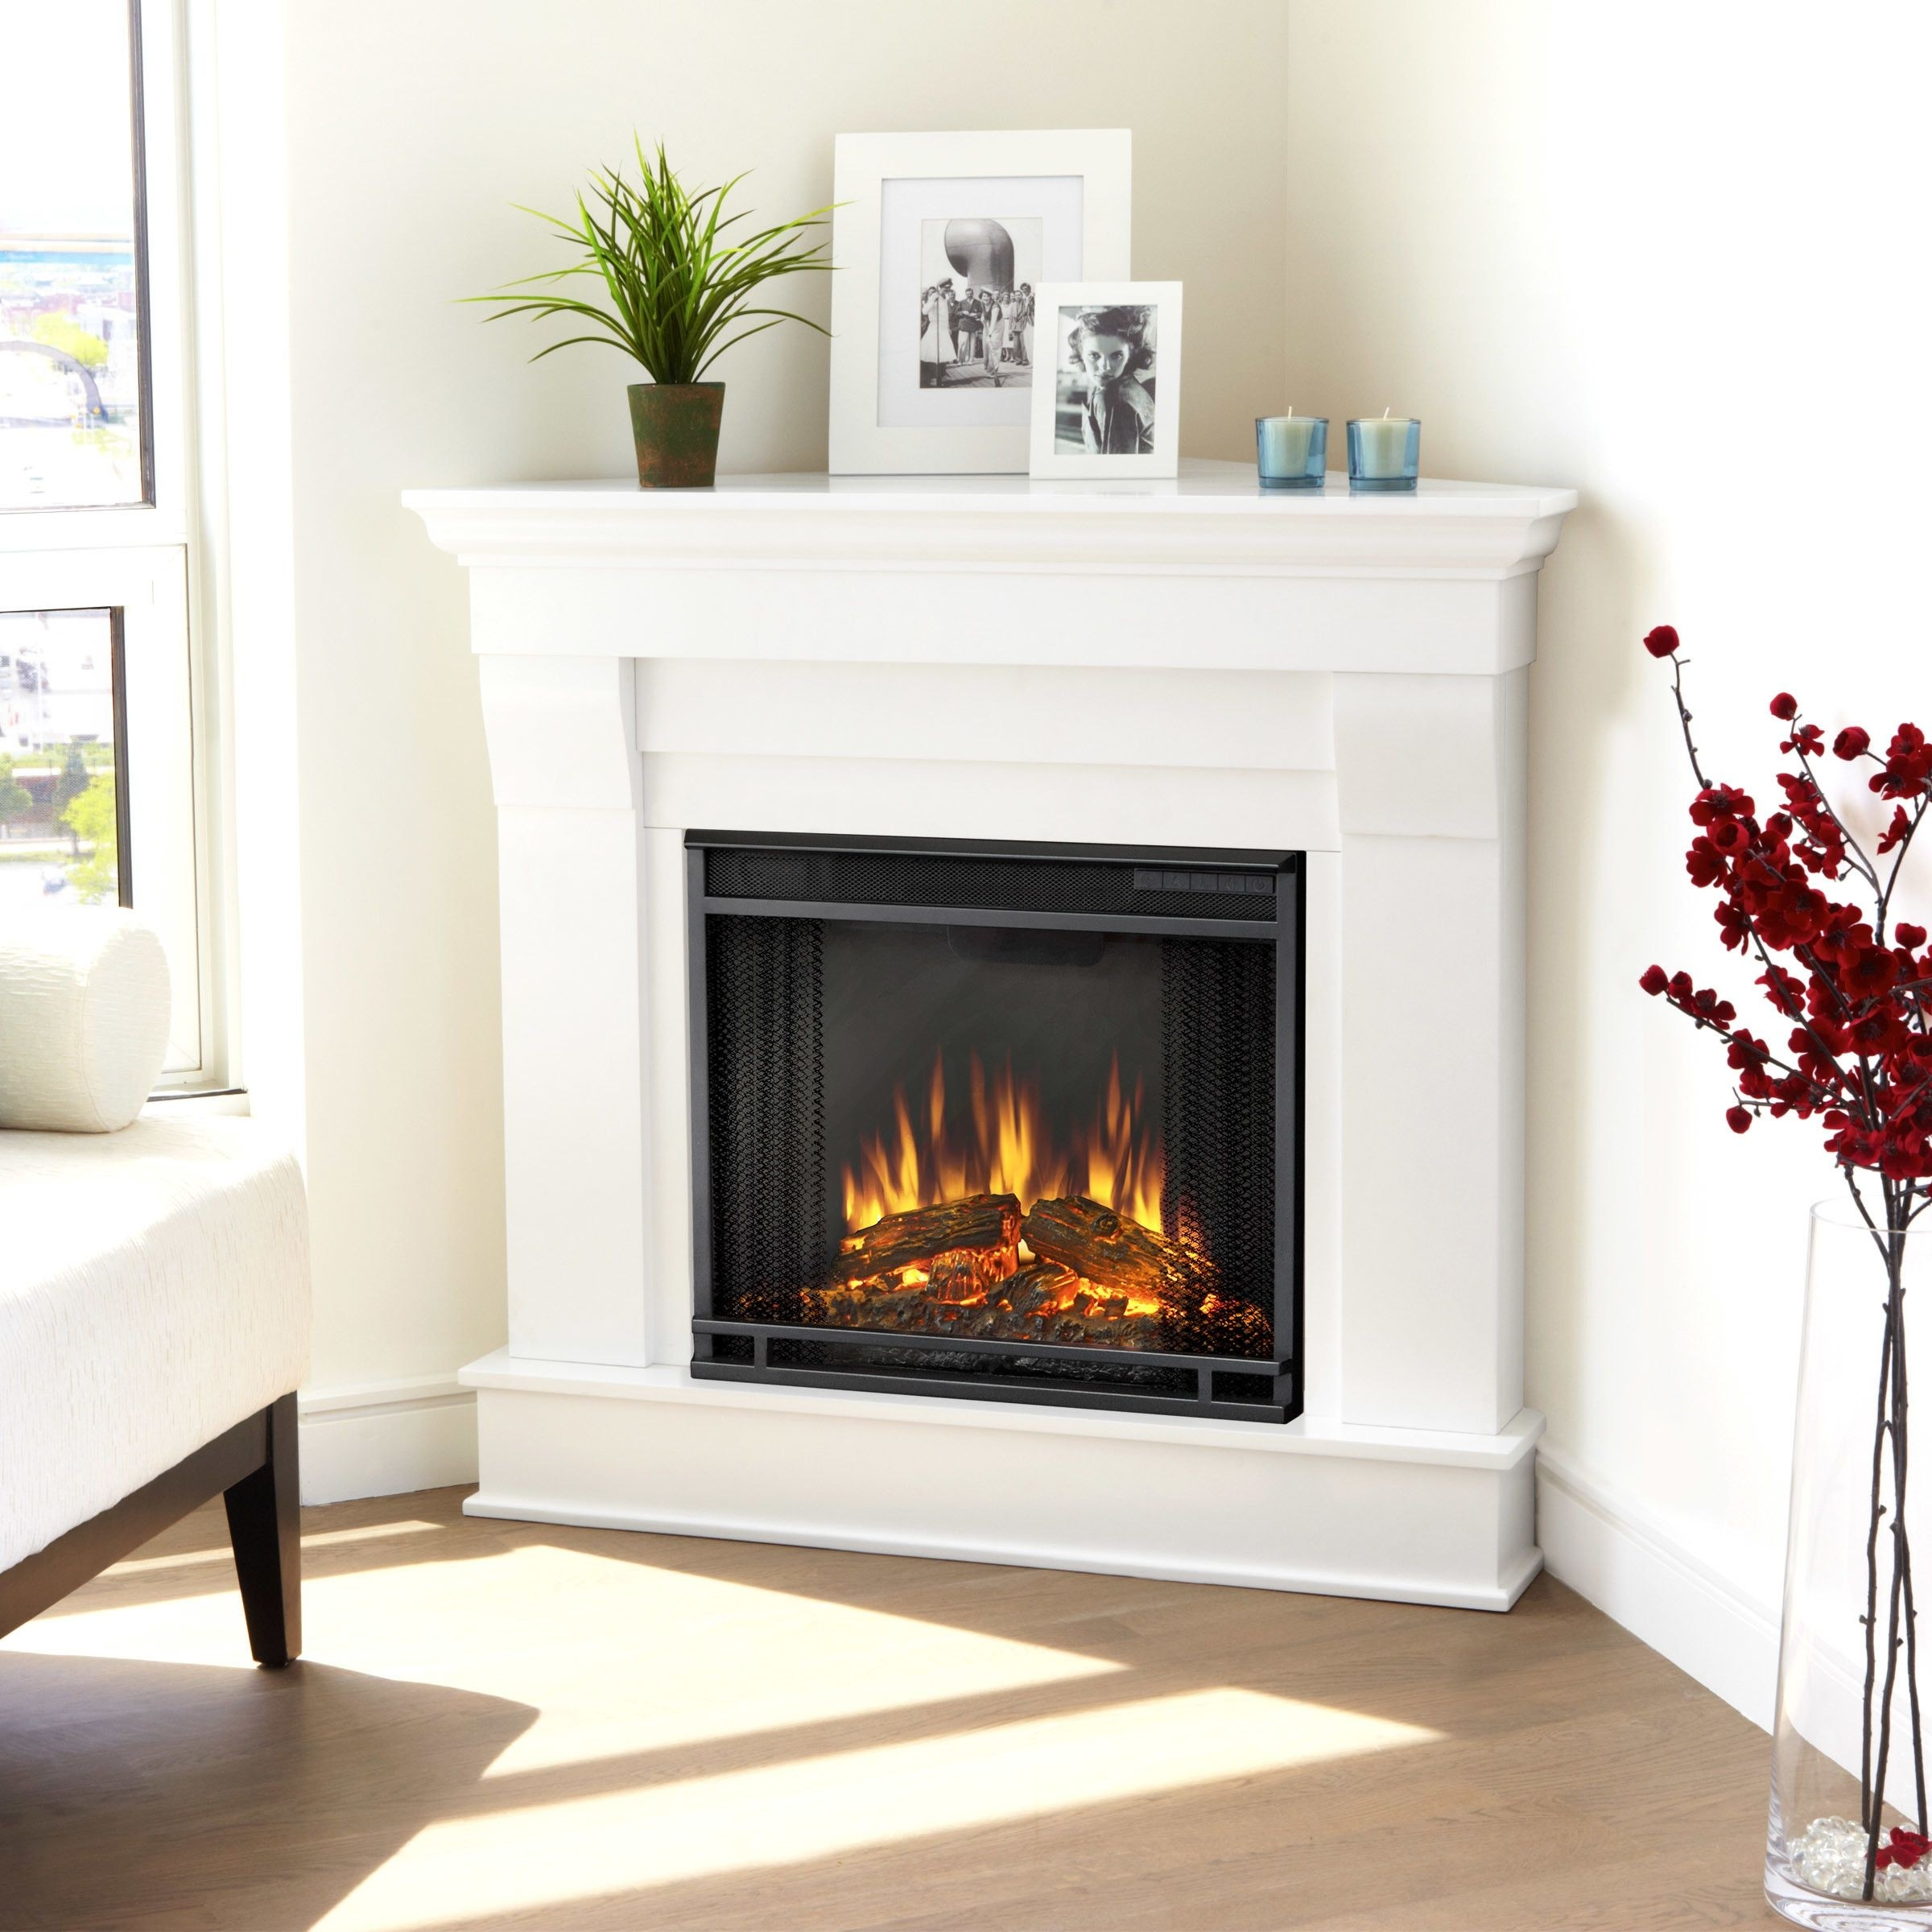 corner ventless gas fireplace ideas on foter rh foter com